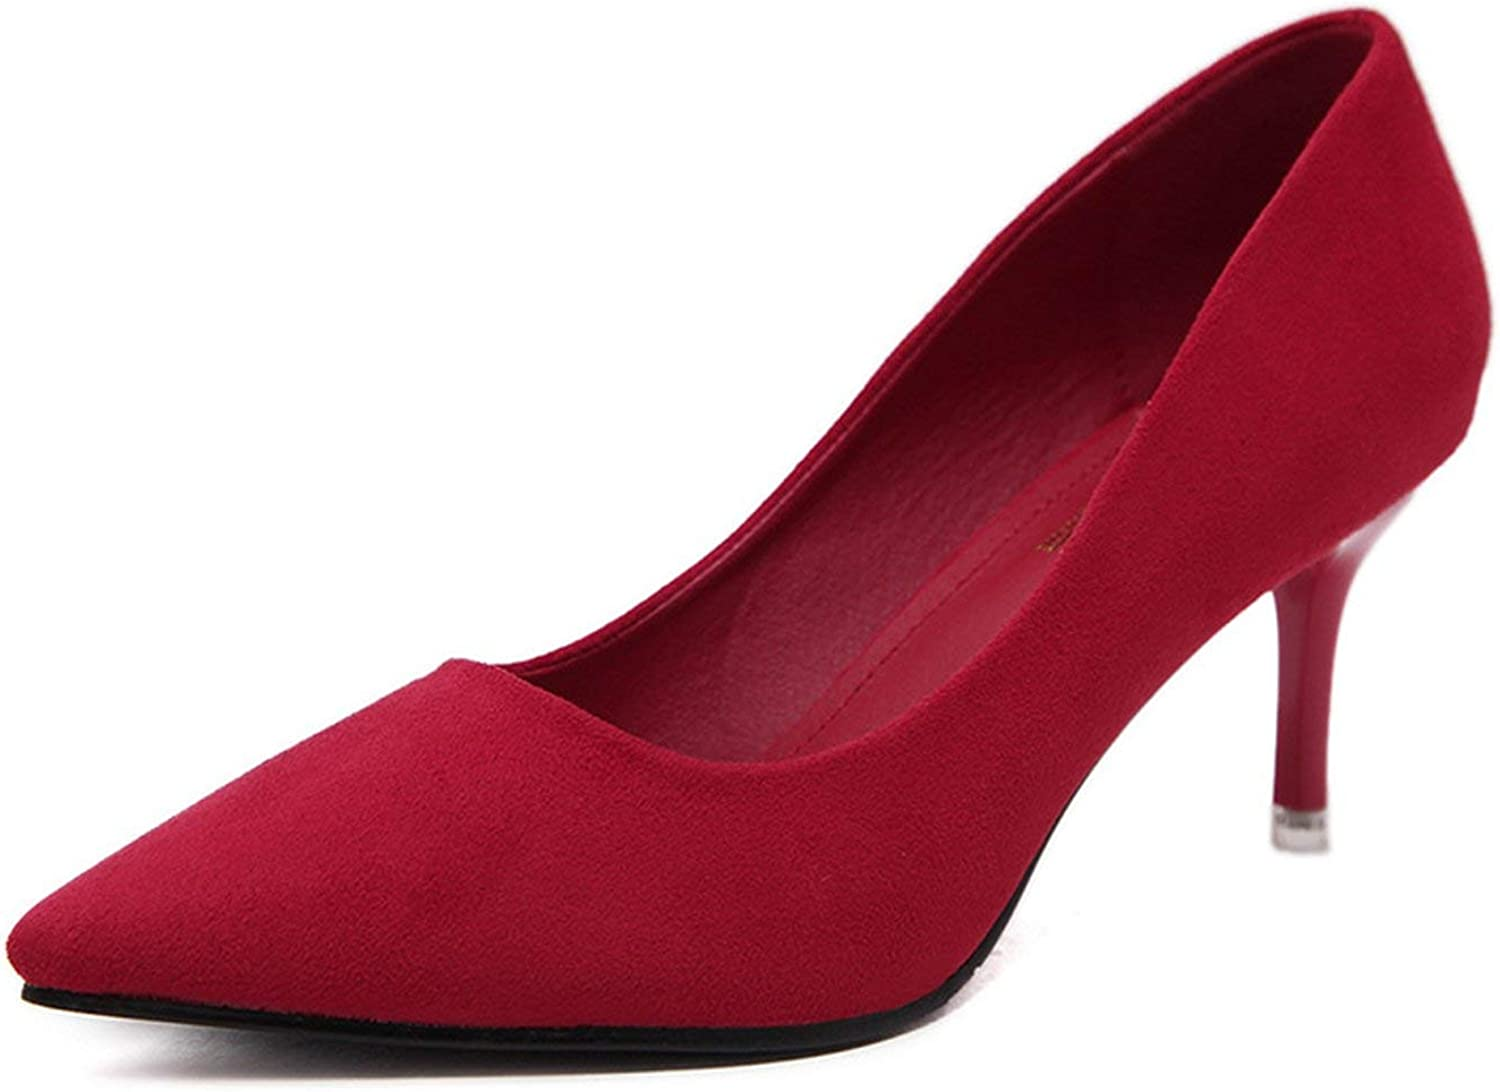 36-41 Thin Heels Spring Career Office shoes Woman Pumps Party OL Suede Women's shoes